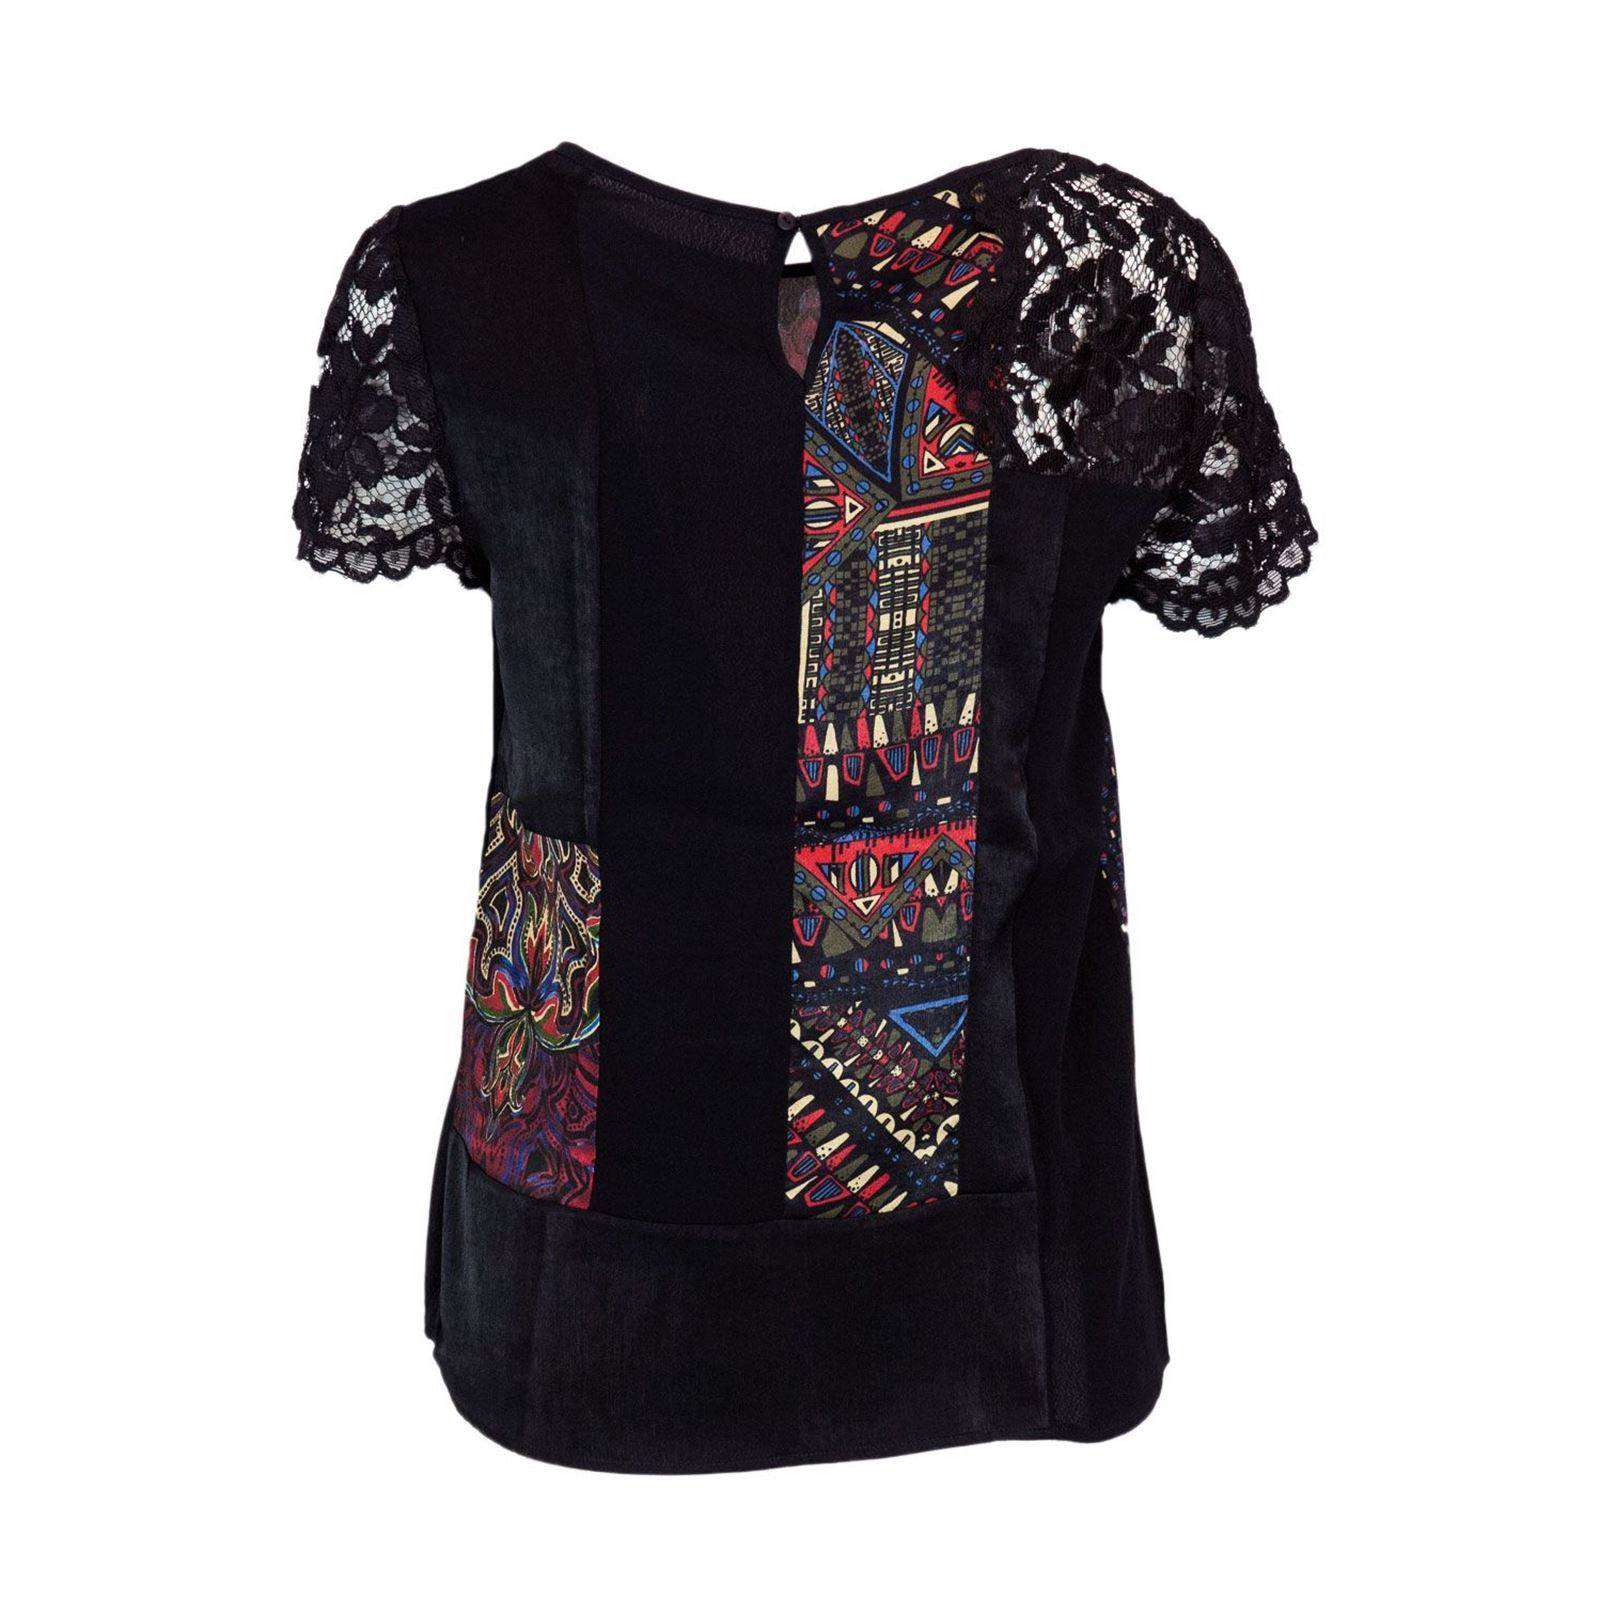 T shirt V Manches Femme Desigual CourtesNoir USzVLqGpM